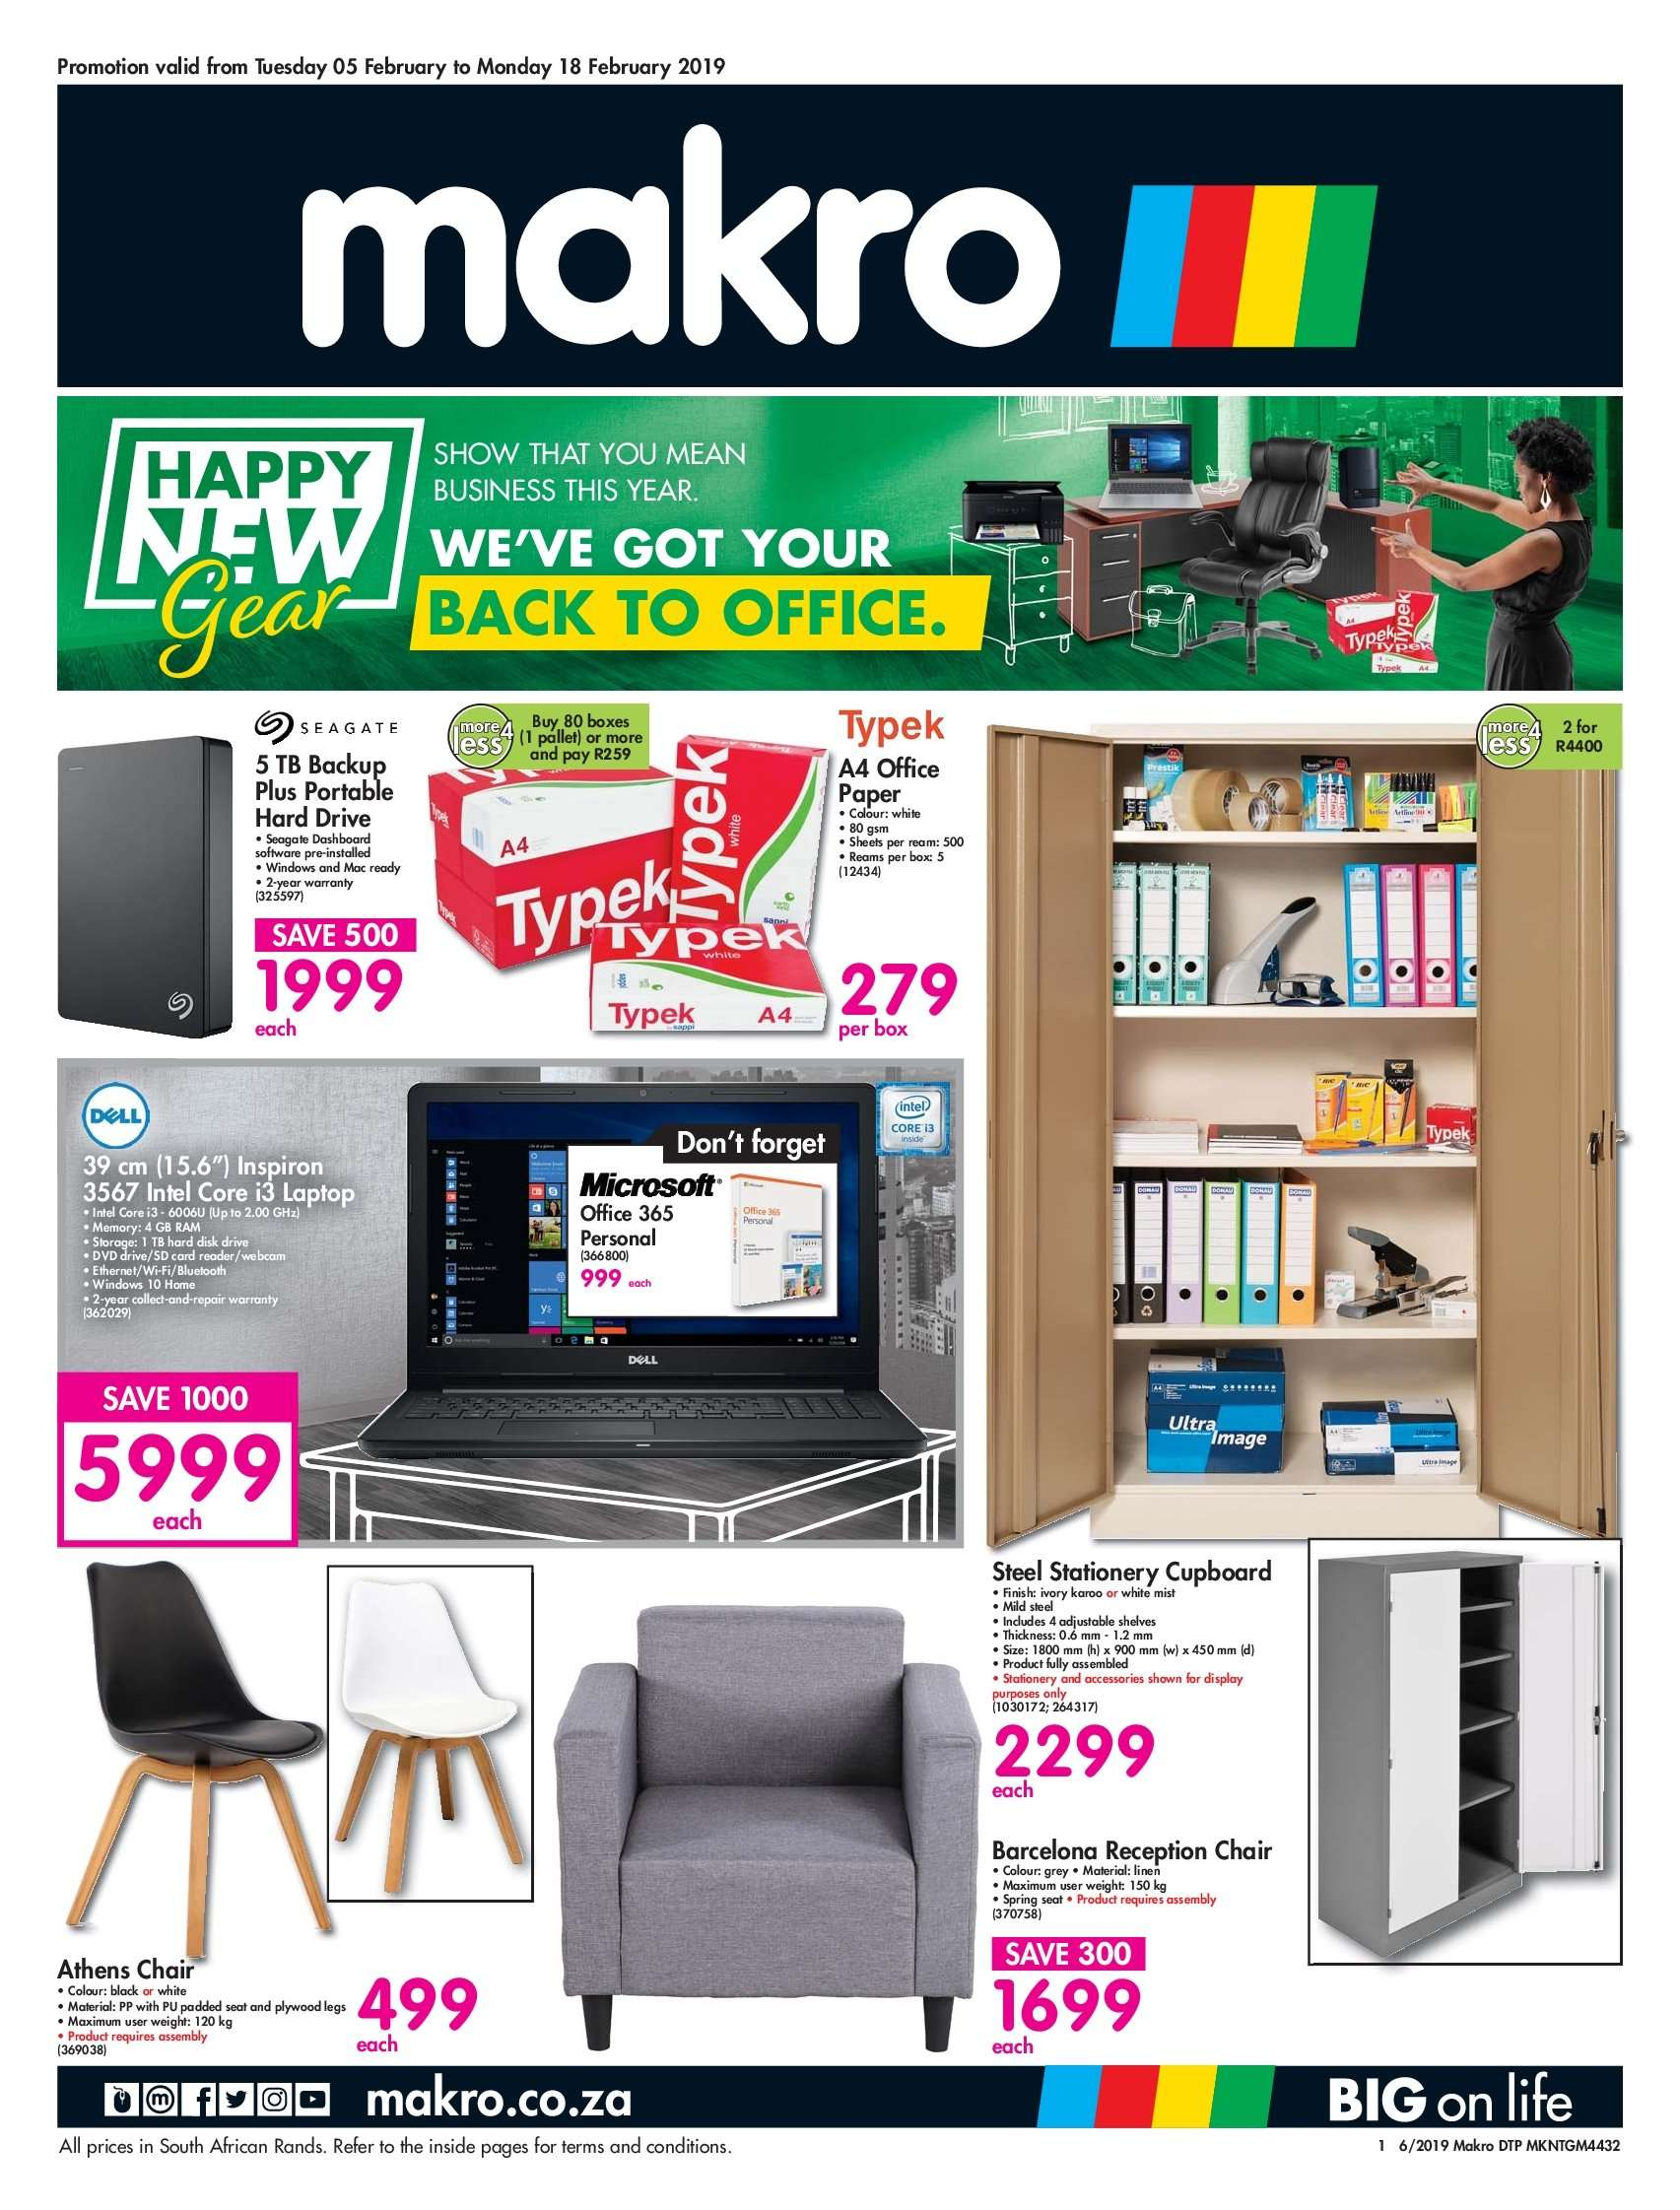 Makro special - 02.05.2019 - 02.18.2019 - Sales products - doll, dvd, laptop, microsoft, shelf, shelves, webcam, wifi, windows, hard drive, chair, intel, plywood, portable hard drive, seagate. Page 1.